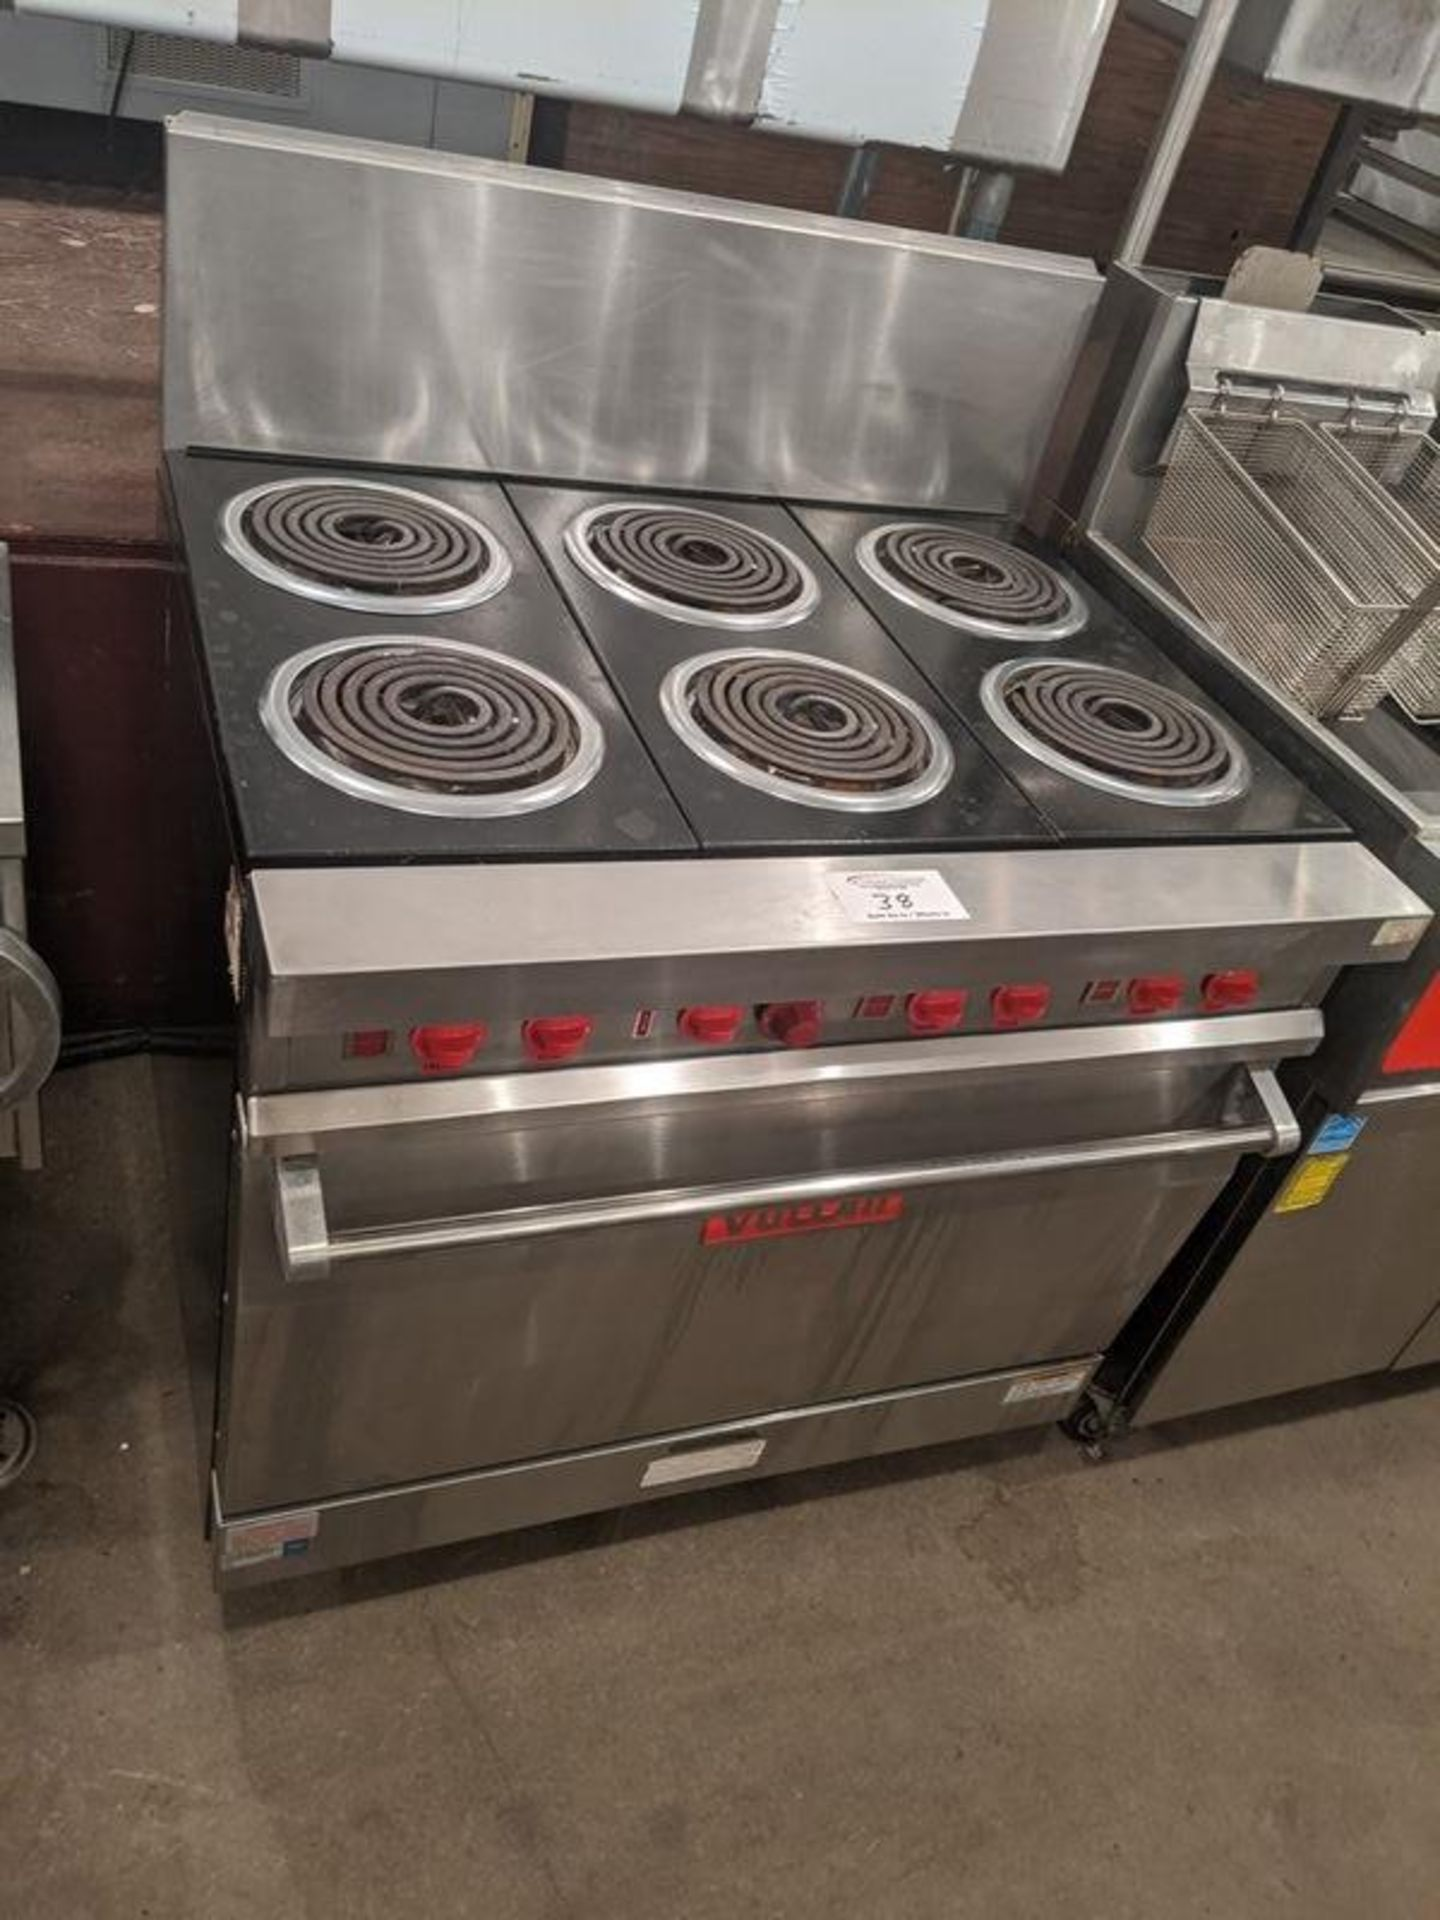 Lot 38 - Vulcan 6 Burner Electric Range with Oven